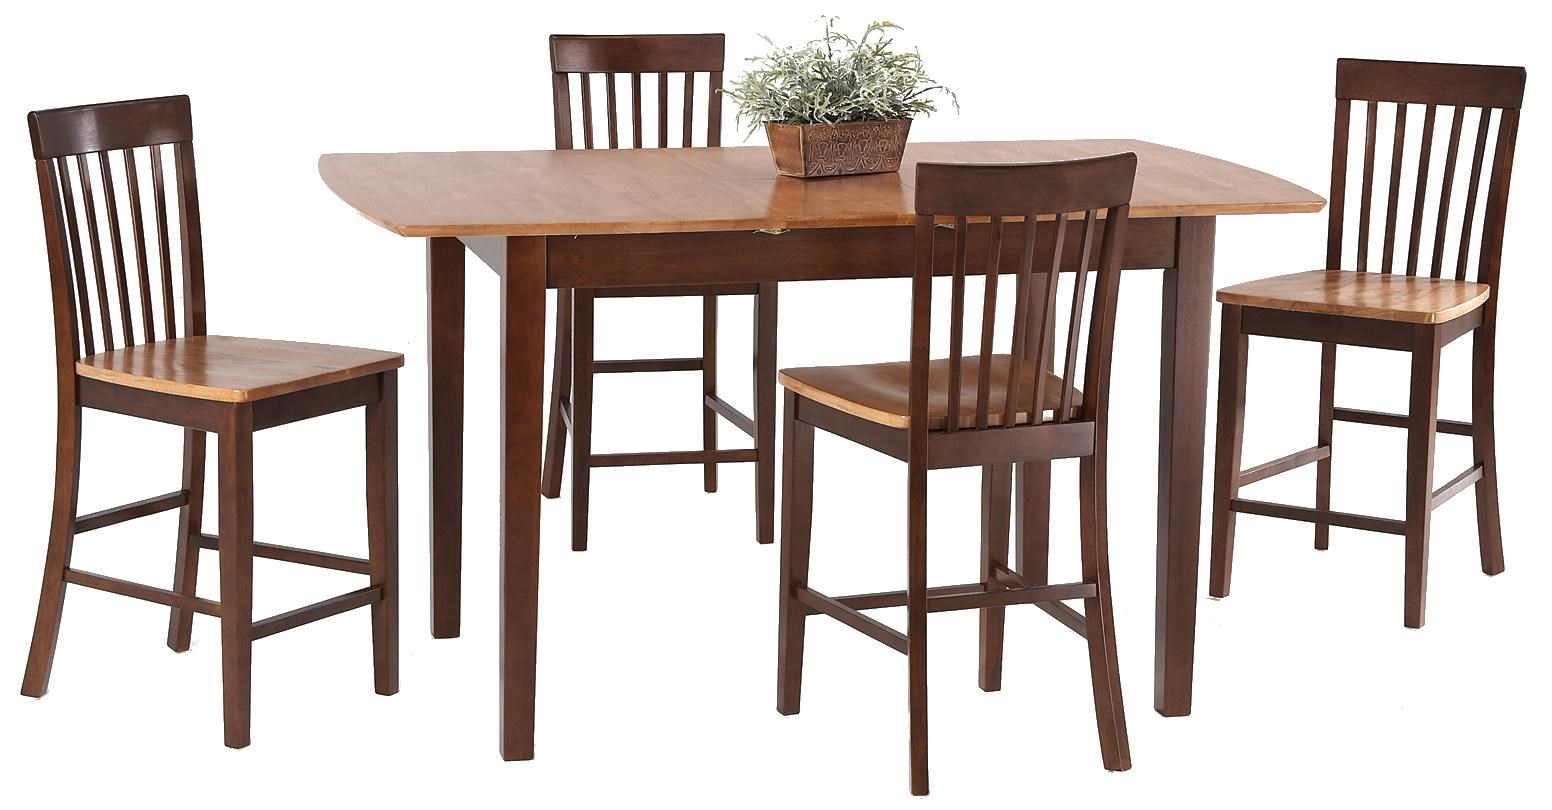 Amesbury Chair Pub Sets 5 Piece Butterfly Leaf Pub Table Set